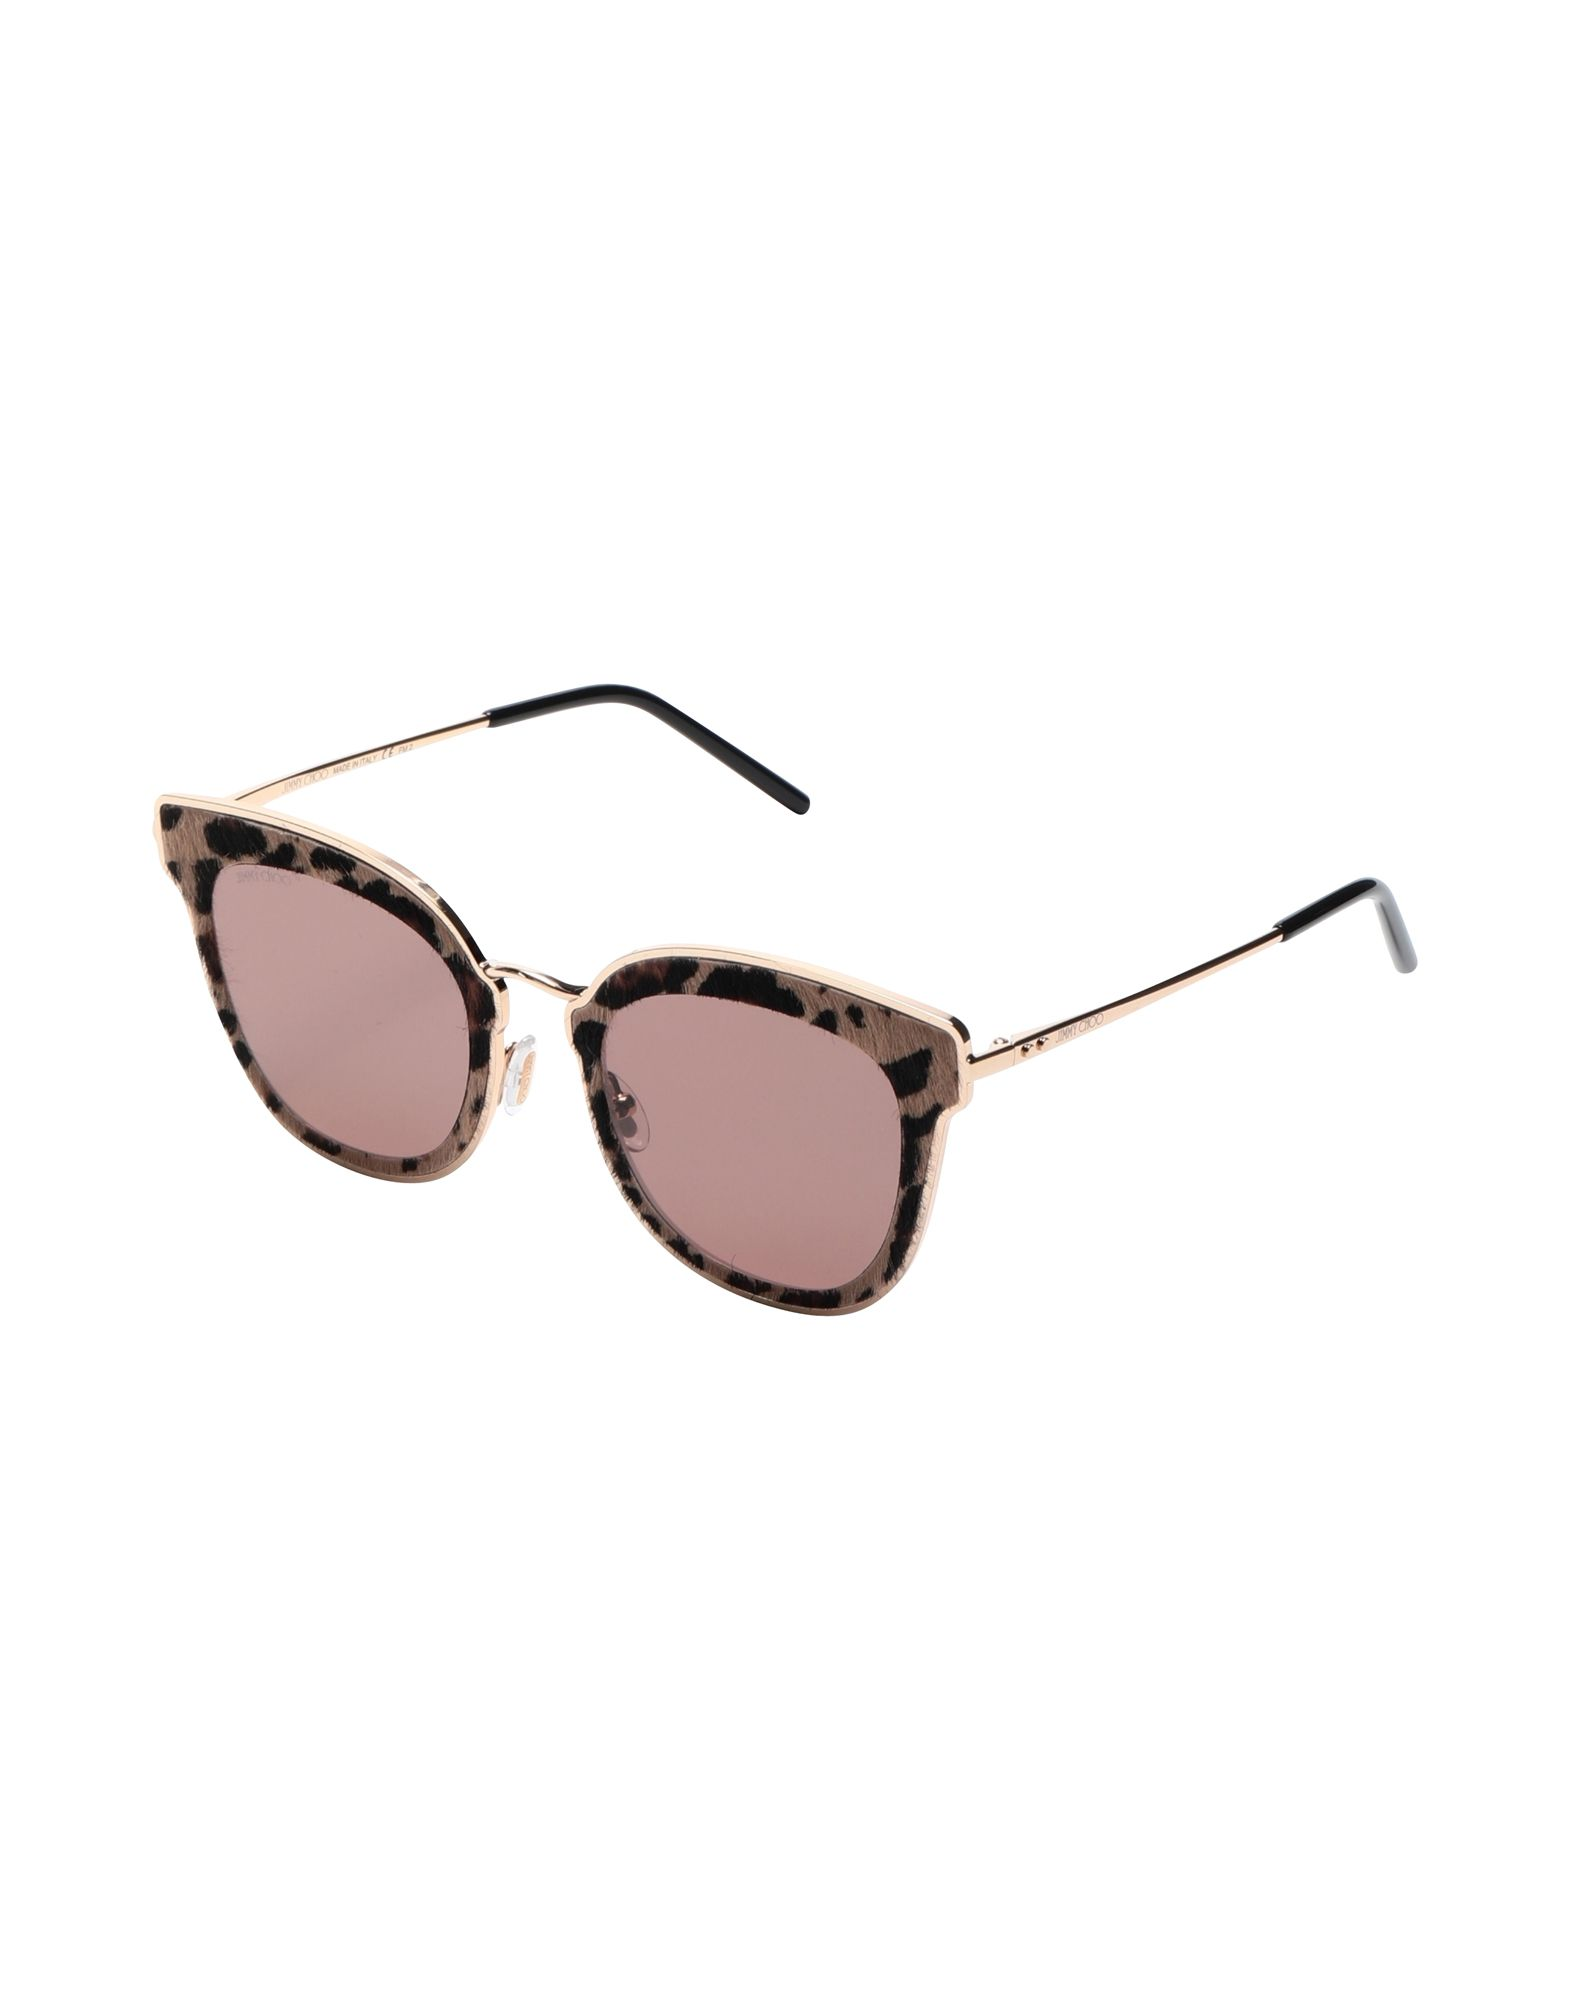 1630fdbf99a Jimmy Choo Nile S - Sunglasses - Women Jimmy Choo Sunglasses online ...